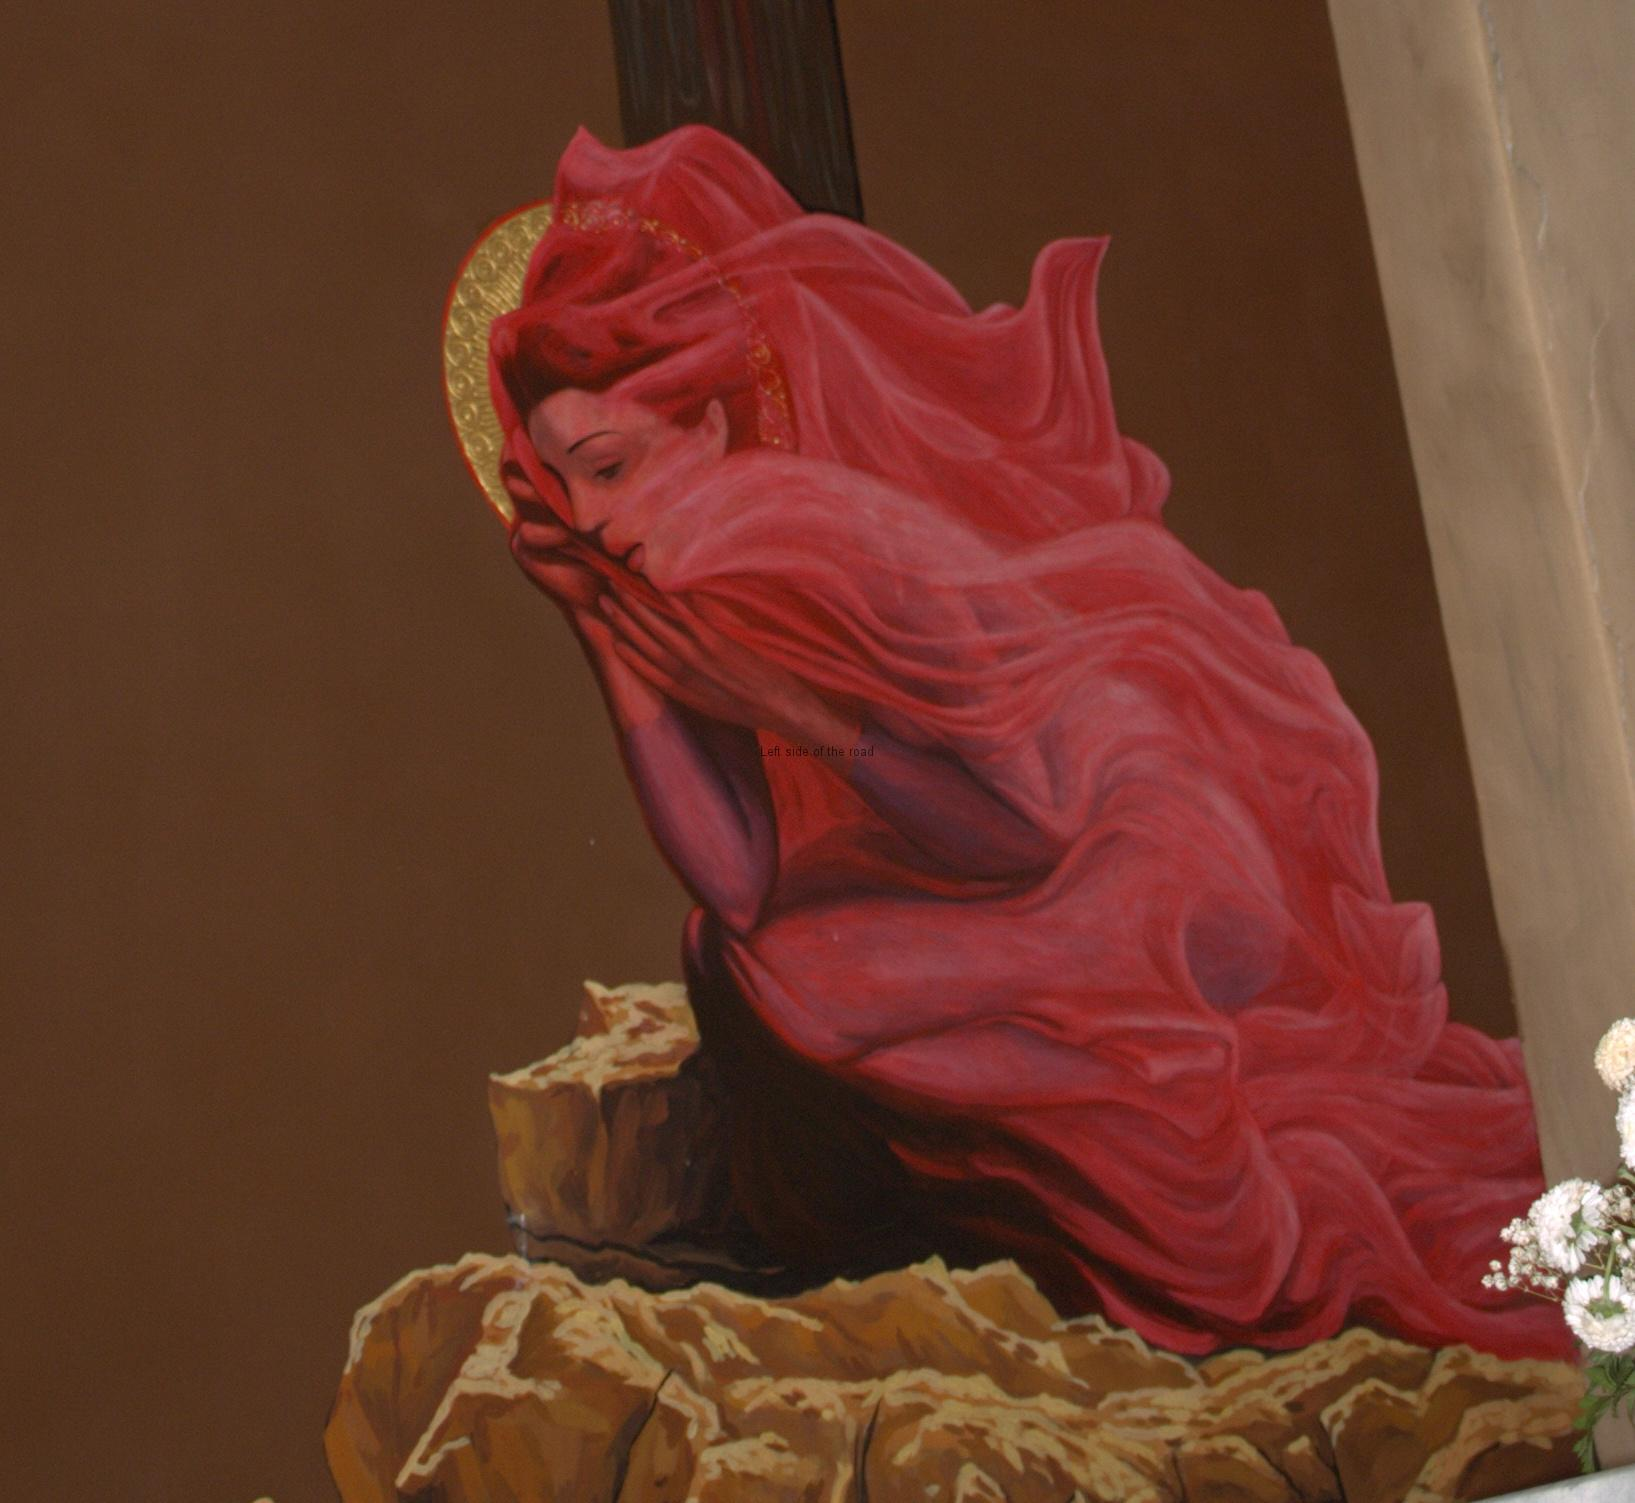 Tirana Catholic Church - Mary Magdalene - detail